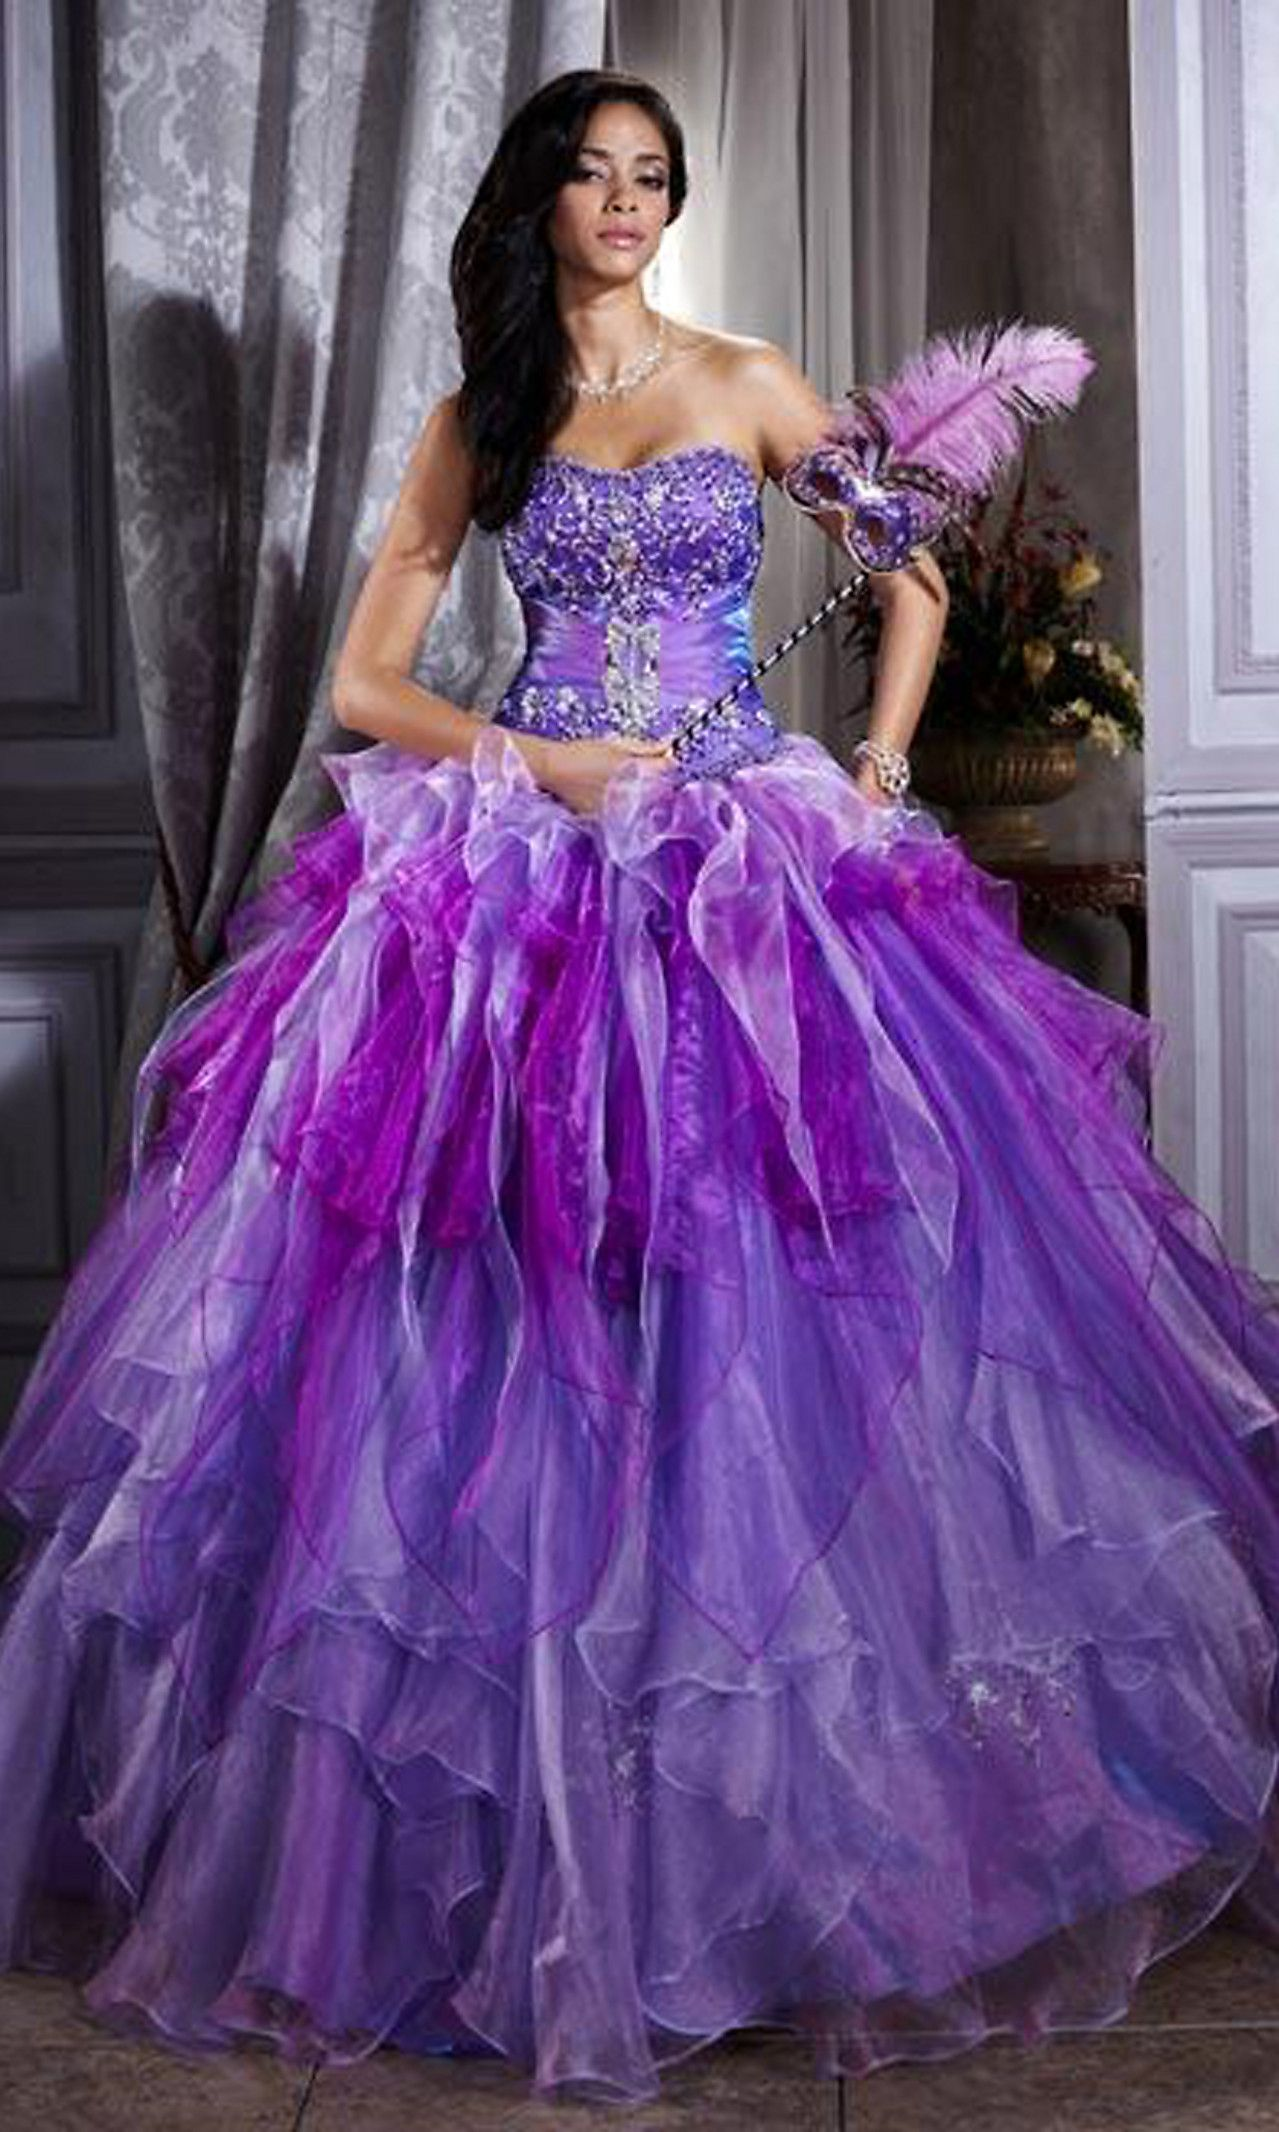 Mascarade Gown | Jewel's Sweet 16 | Pinterest | Quince ...